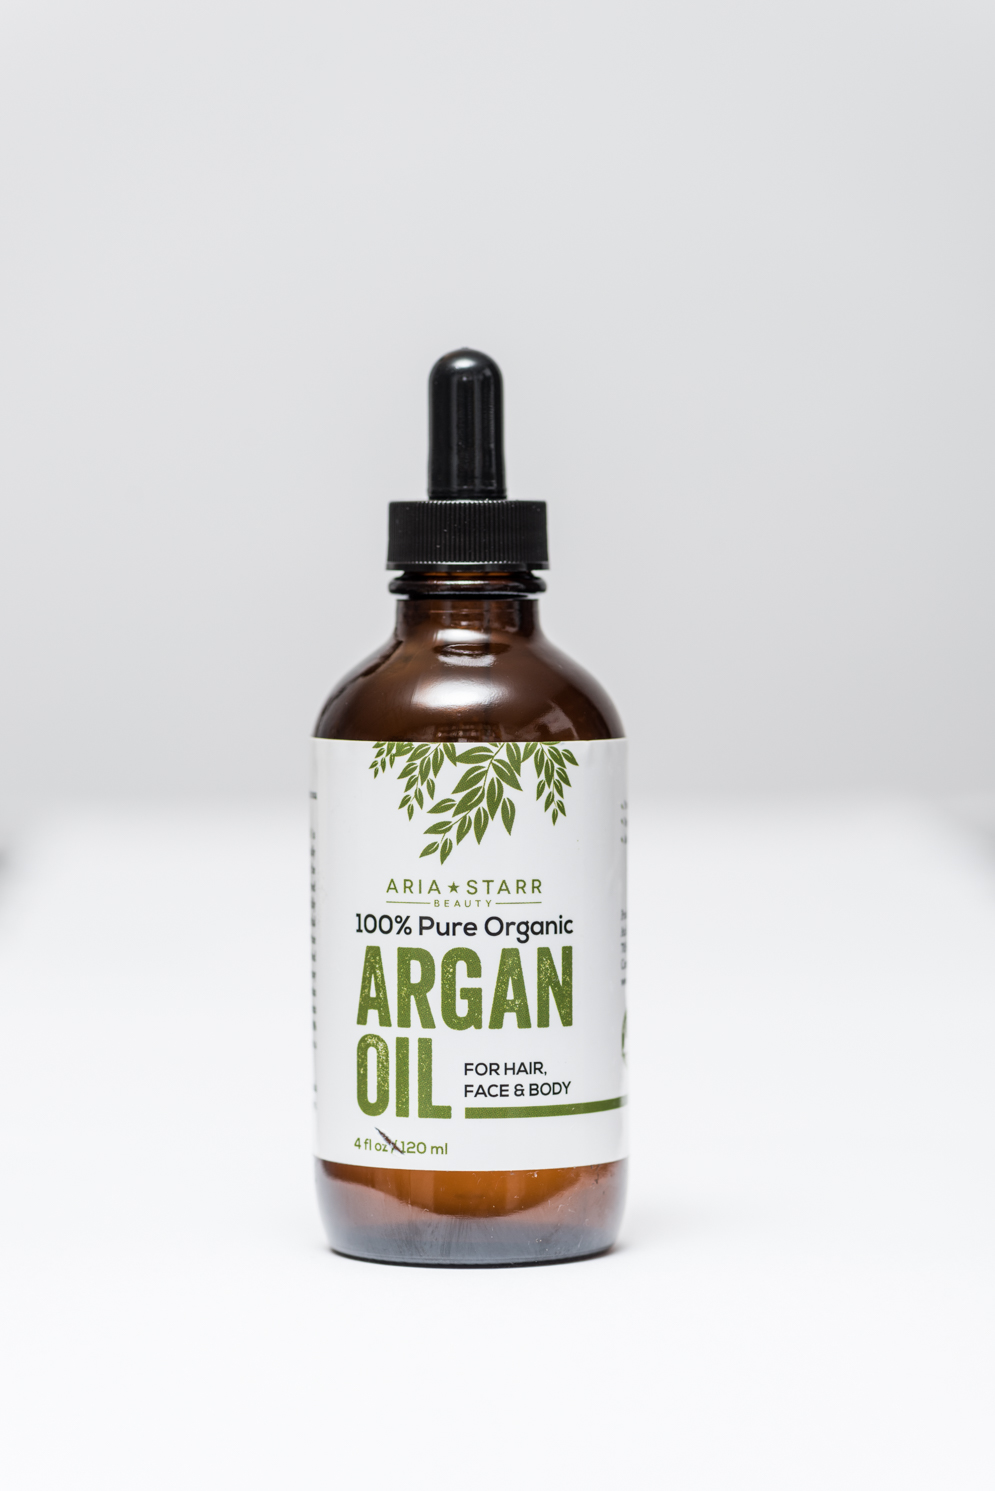 ROCK MAMA NYC LIFESTYLE BLOG - argan oil